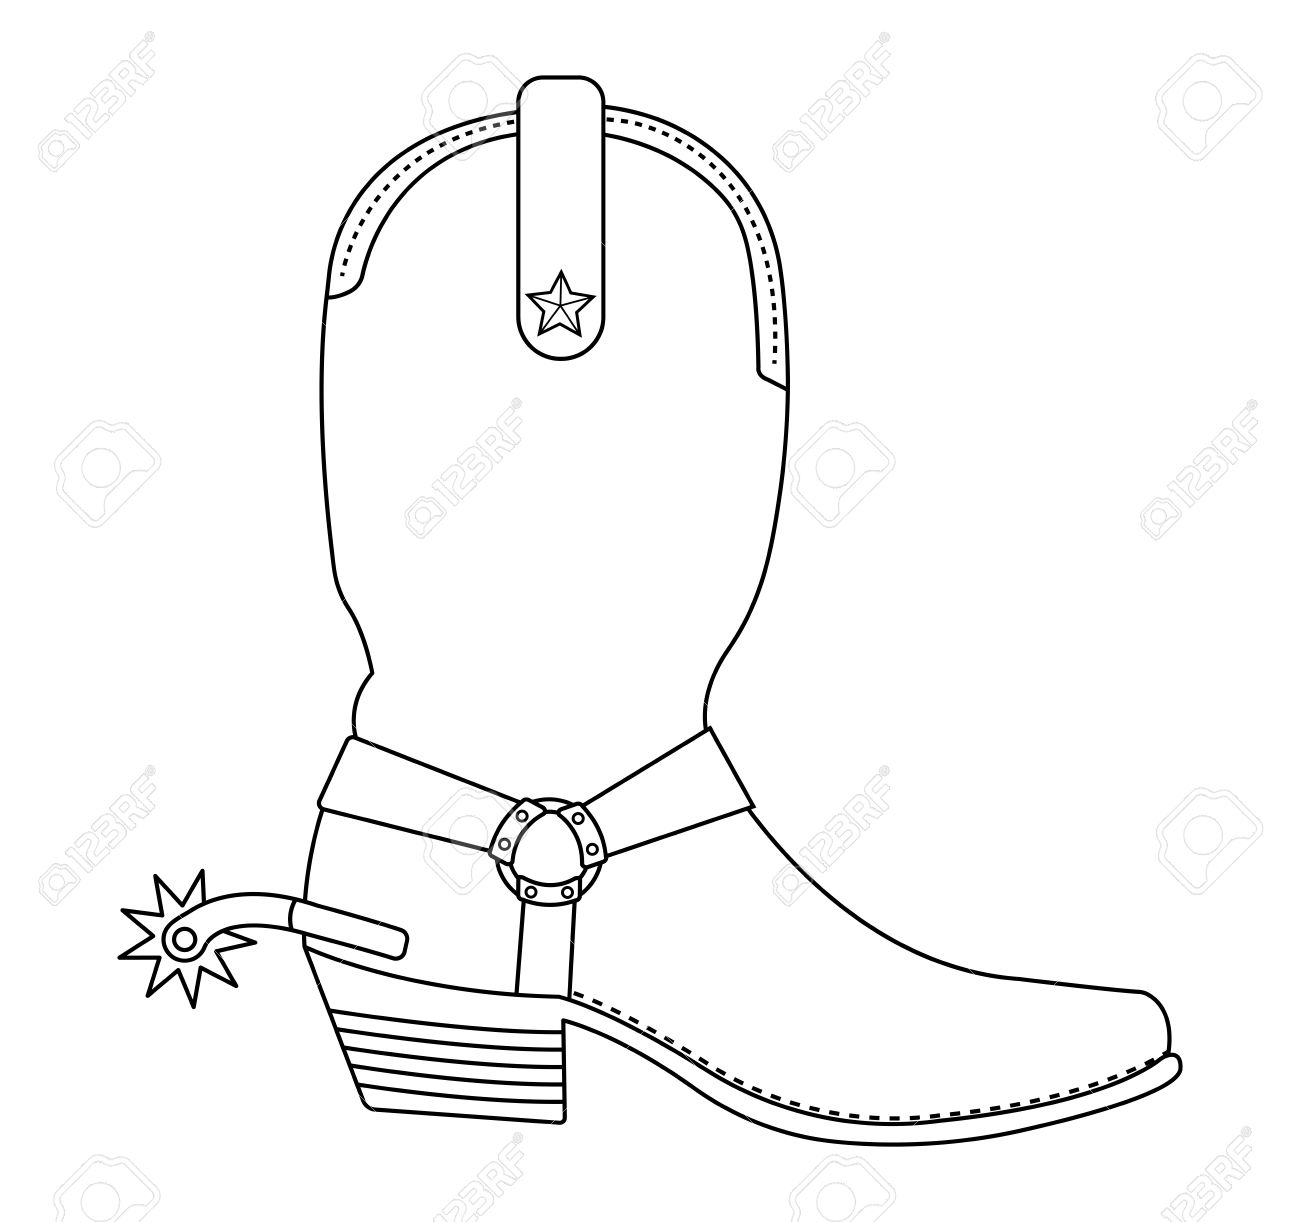 Wild West Cowboy Boot With Spur And Star. Contour Lines Vector ...